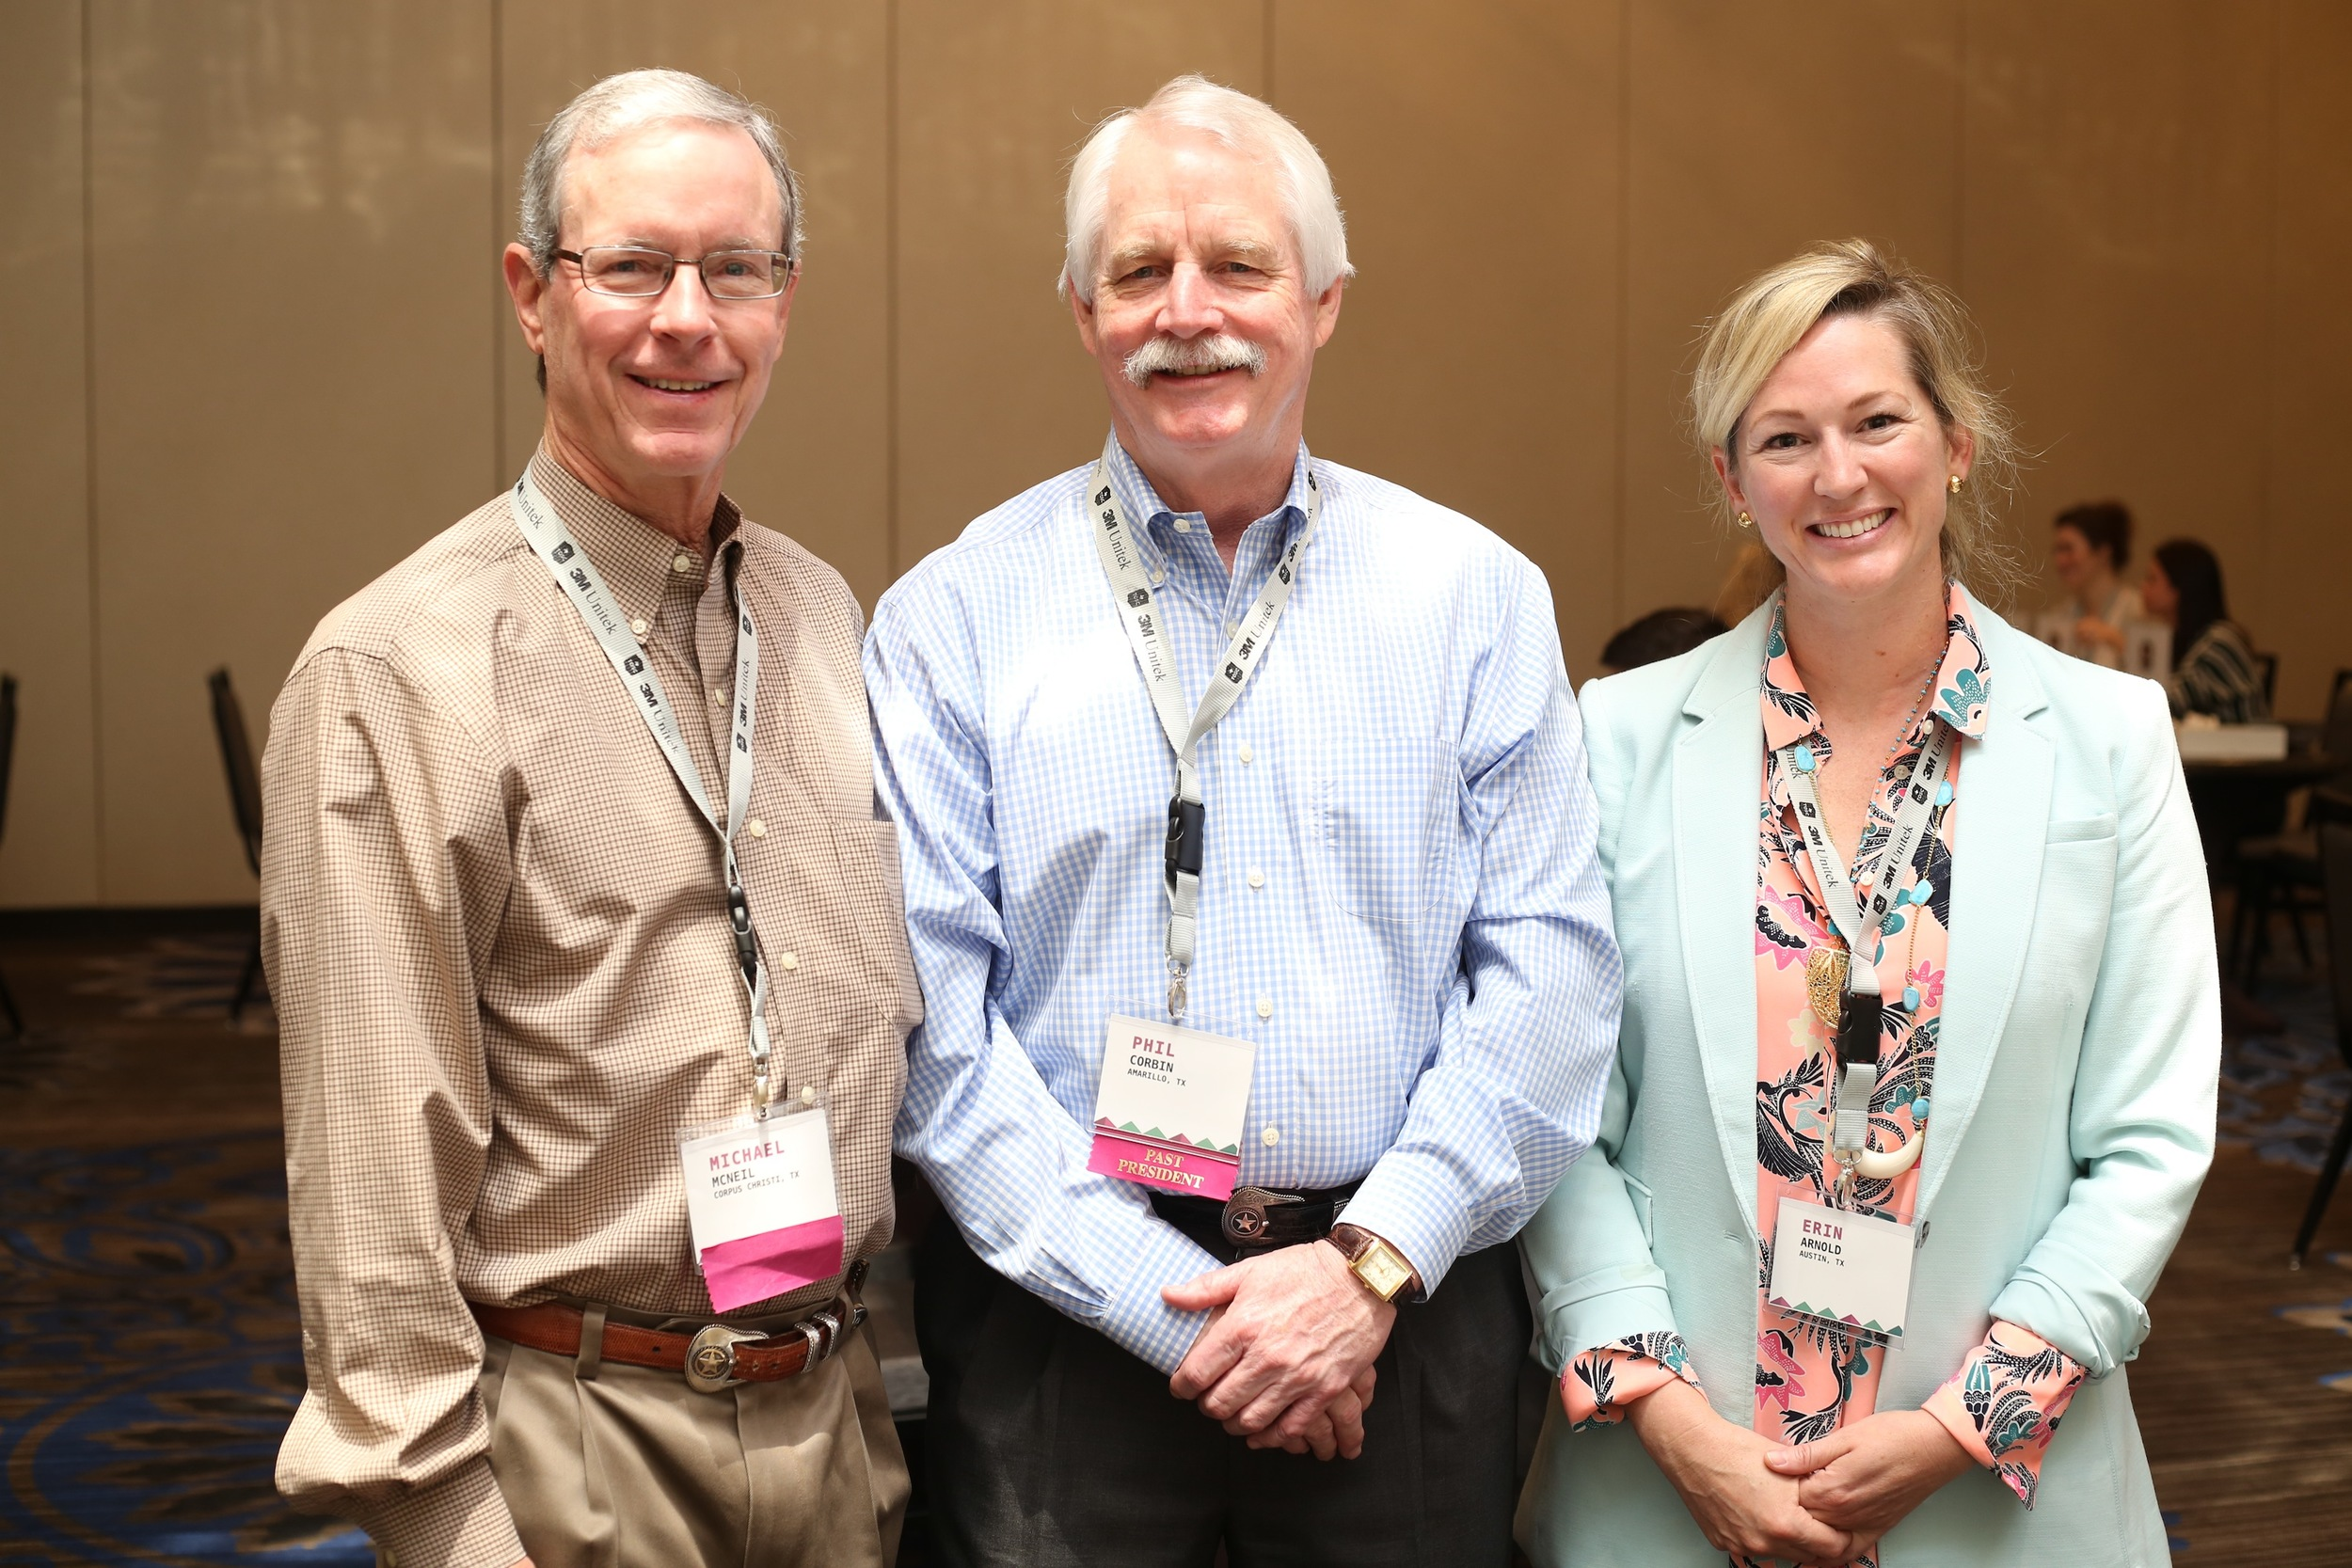 Drs. Mike McNeil, Phil Corbin and Erin Arnold